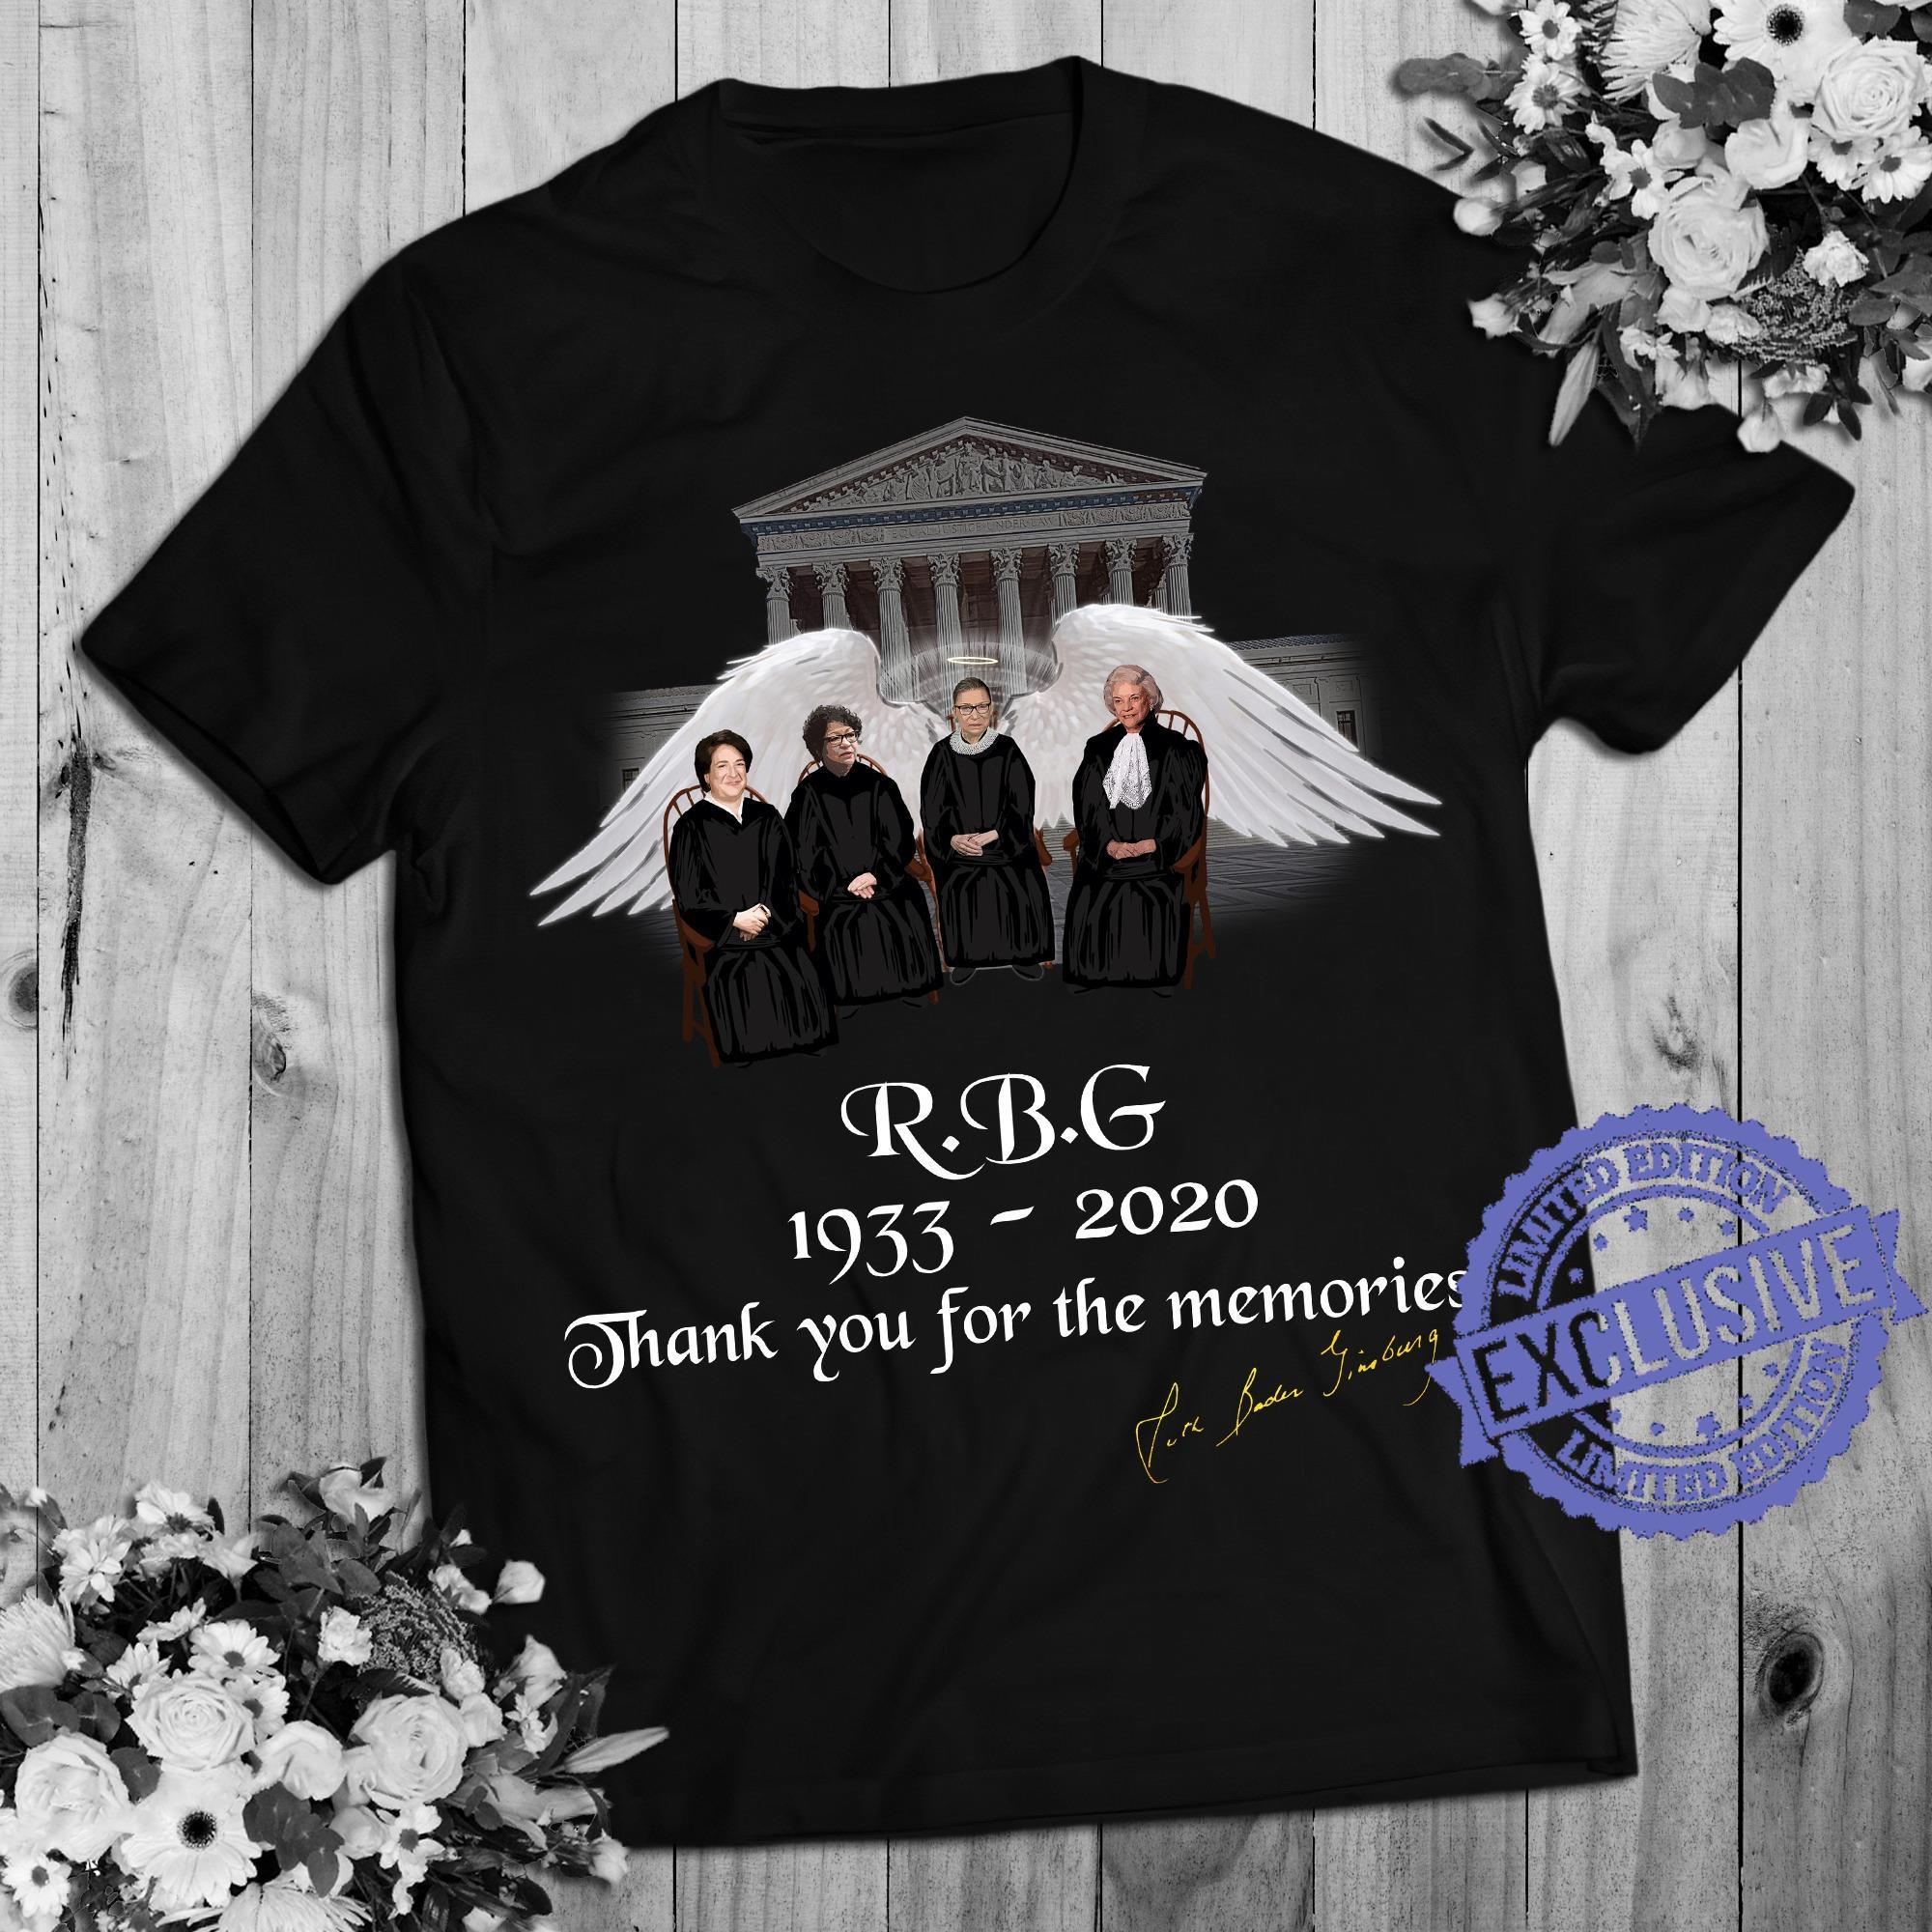 Rbg 1933 2020 thank you for the memories shirt